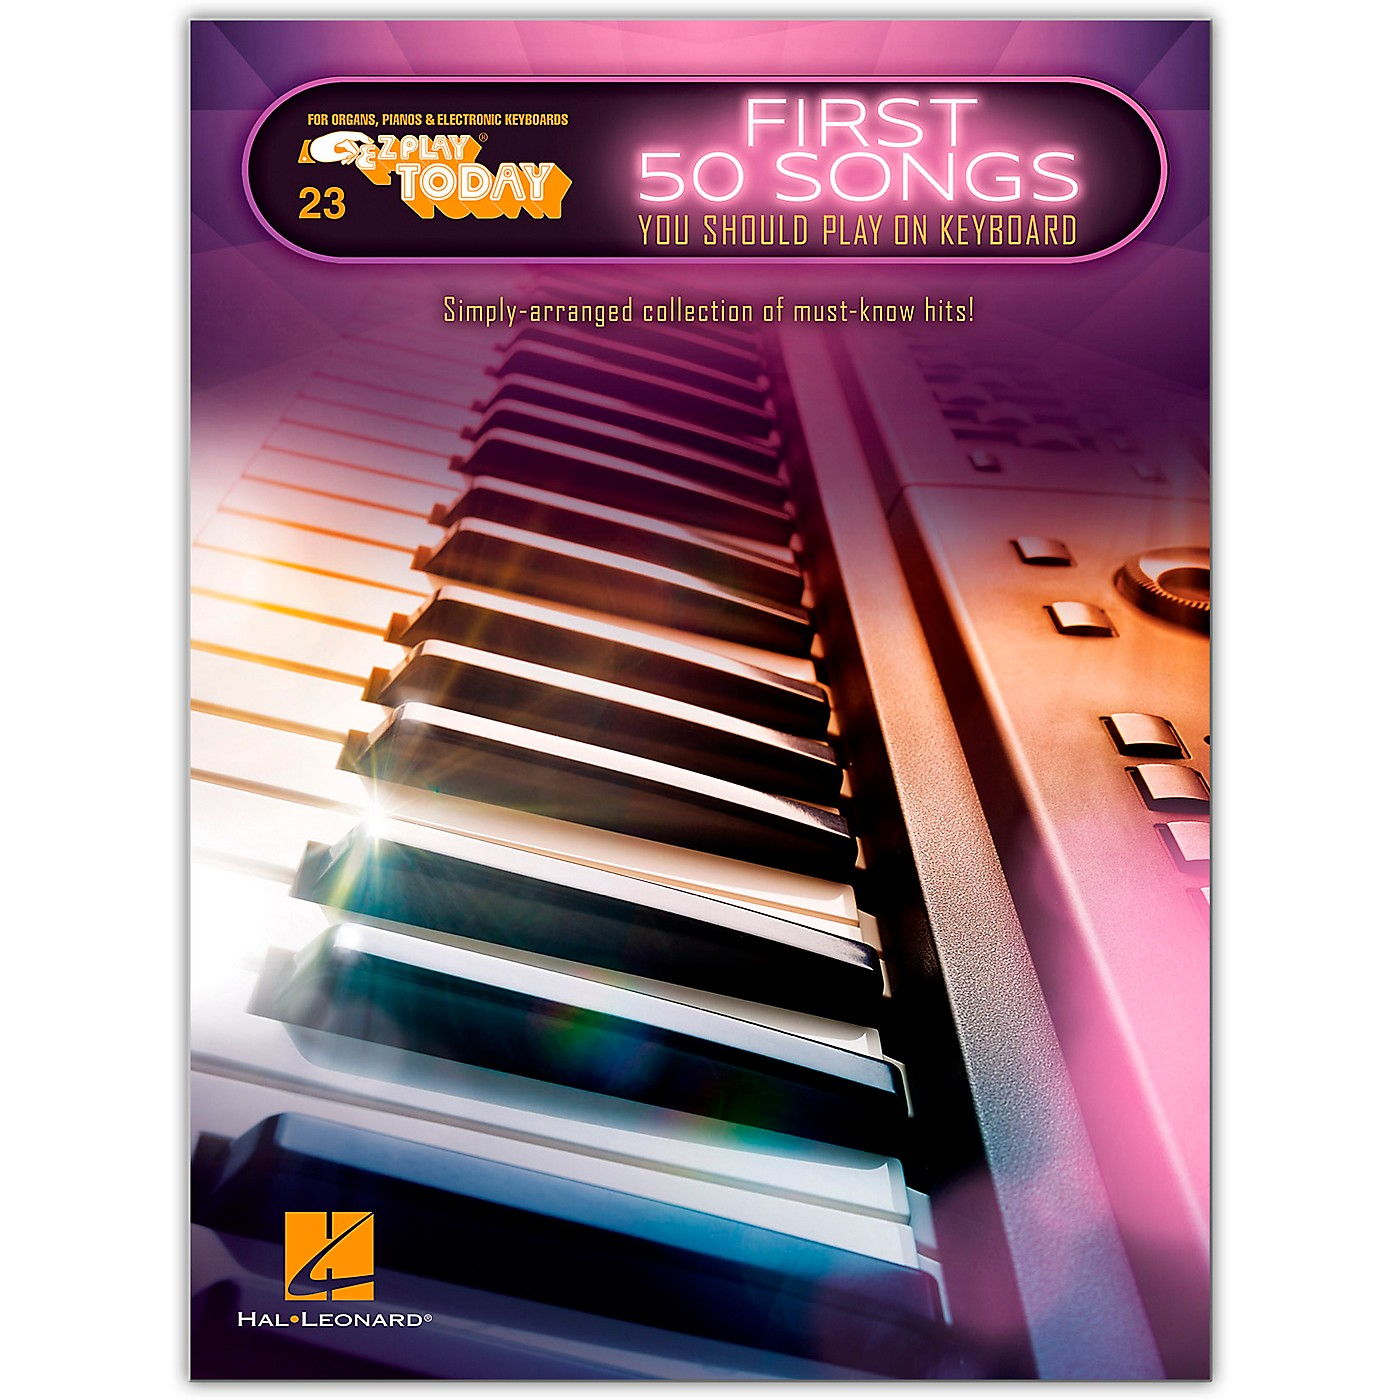 Hal Leonard First 50 Songs You Should Play on Keyboard E-Z Play Today Volume 23 thumbnail